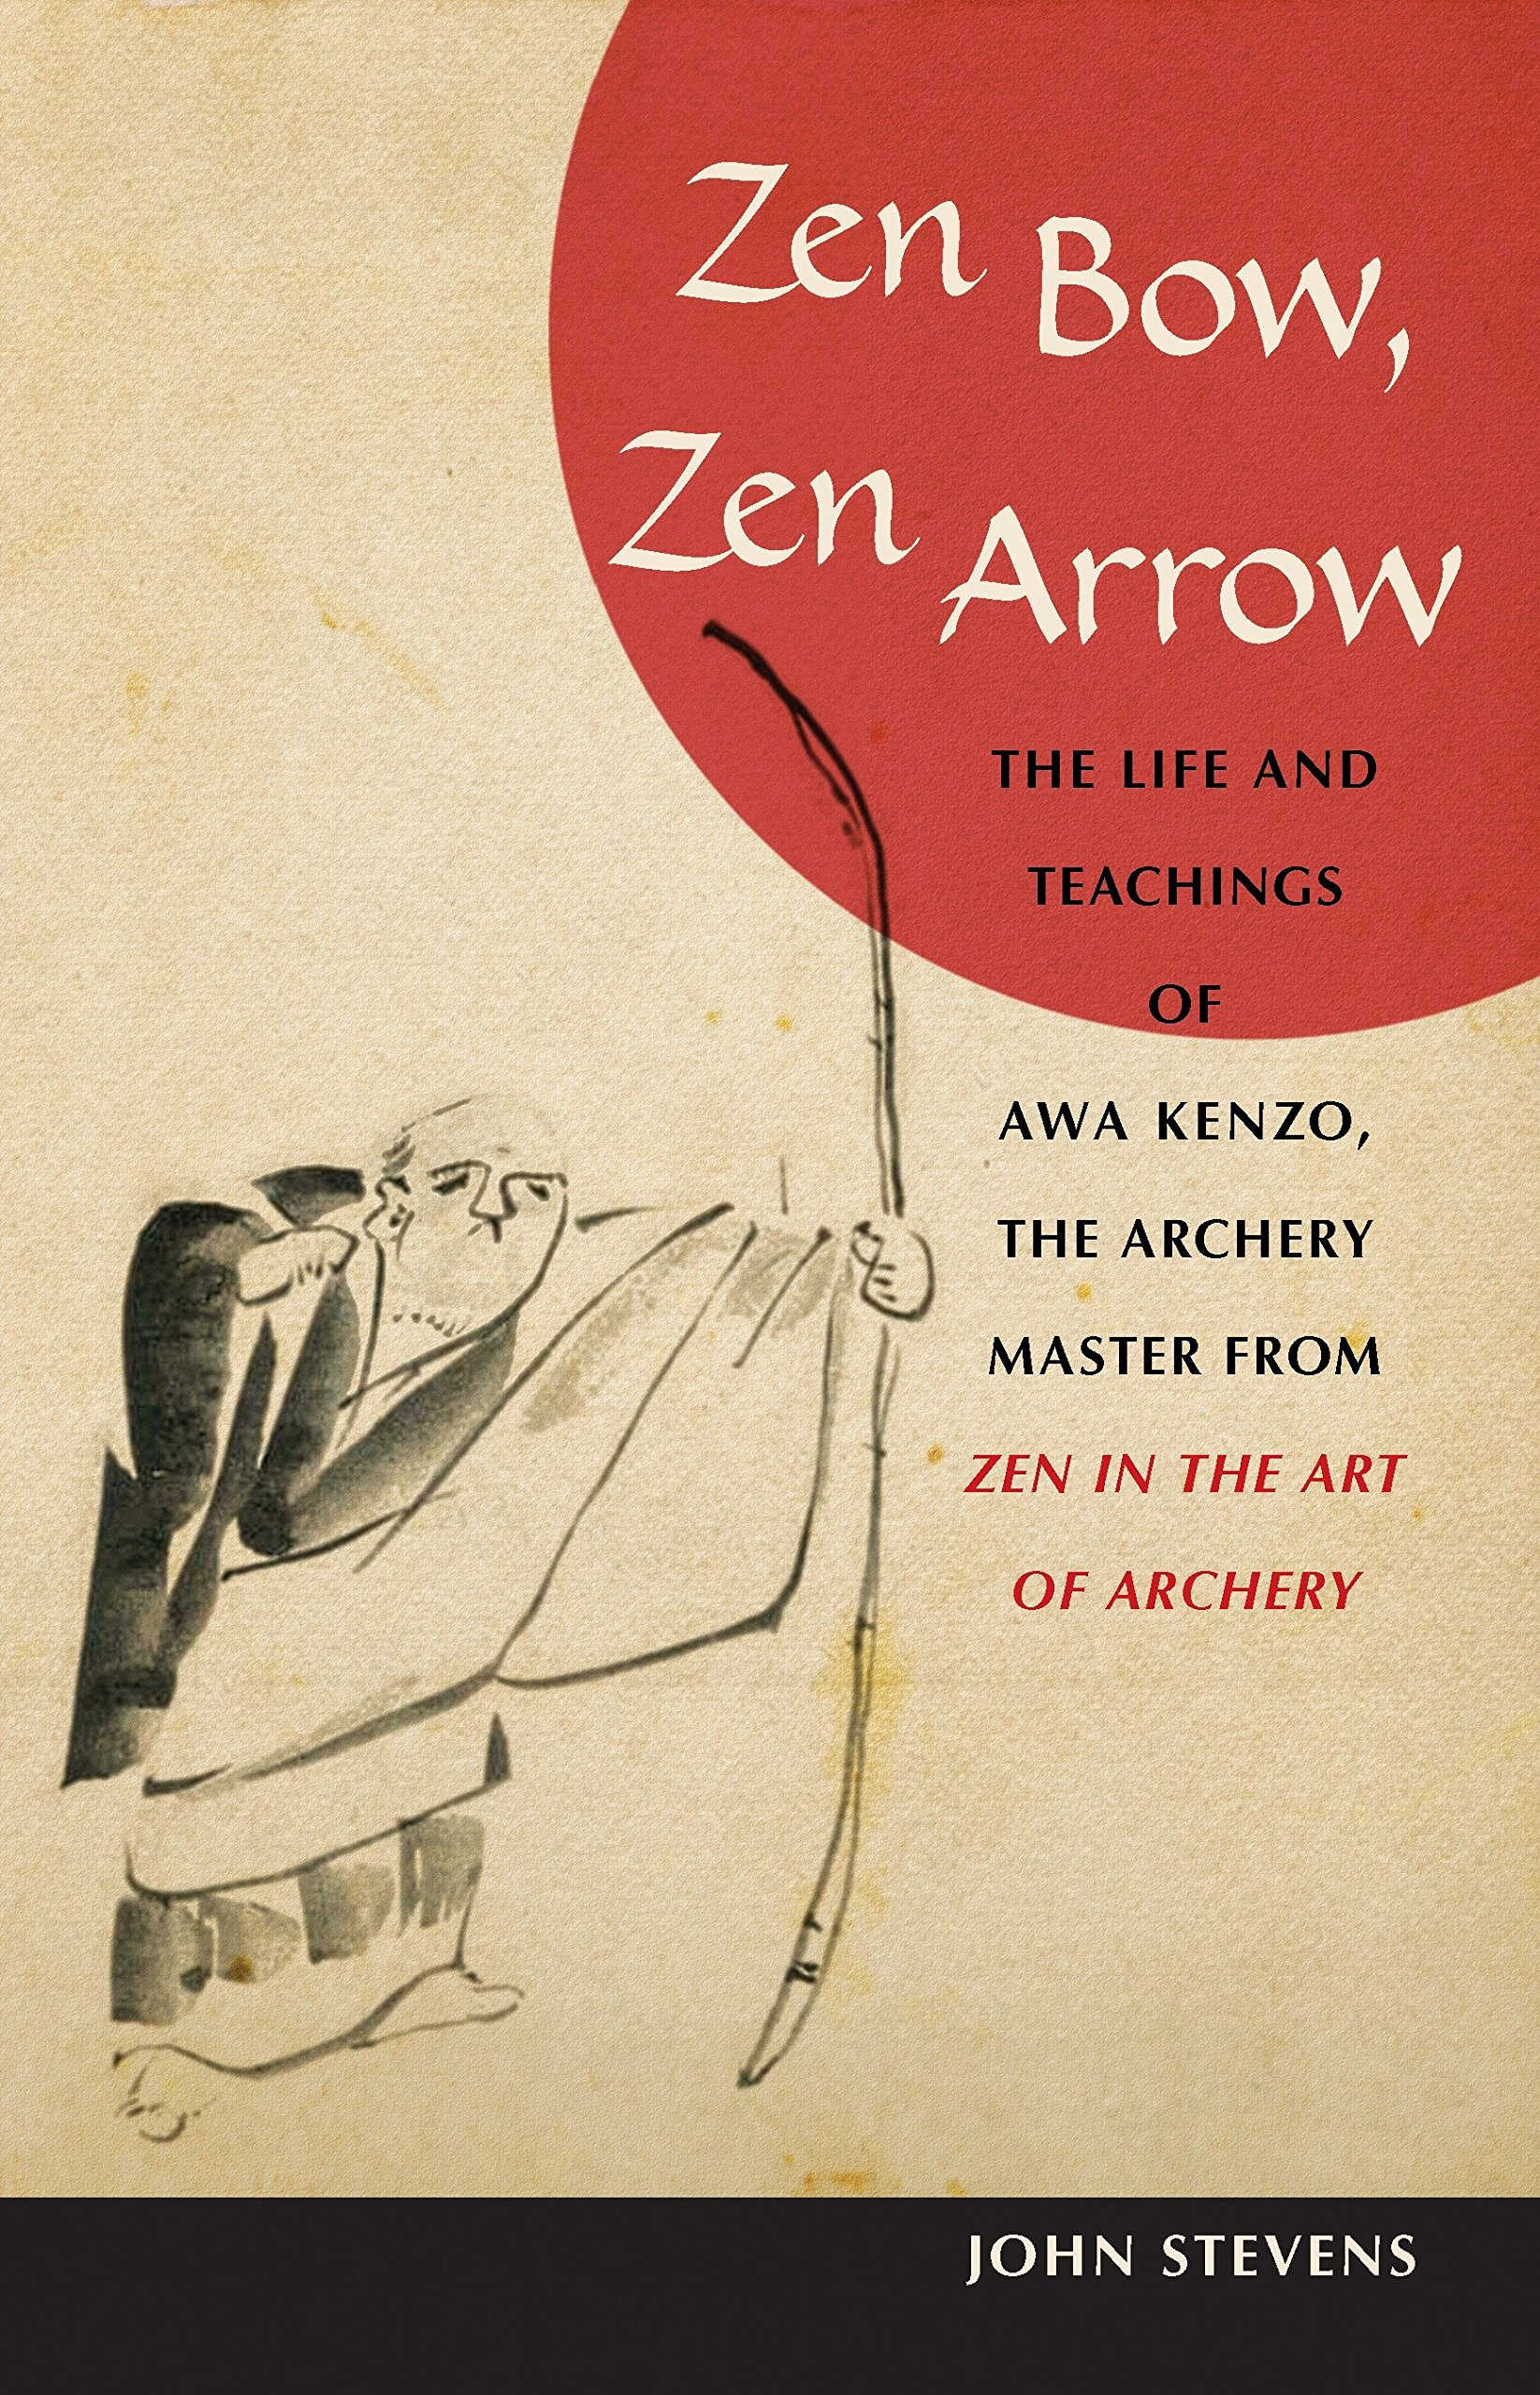 Stevens Zen Bow cover art